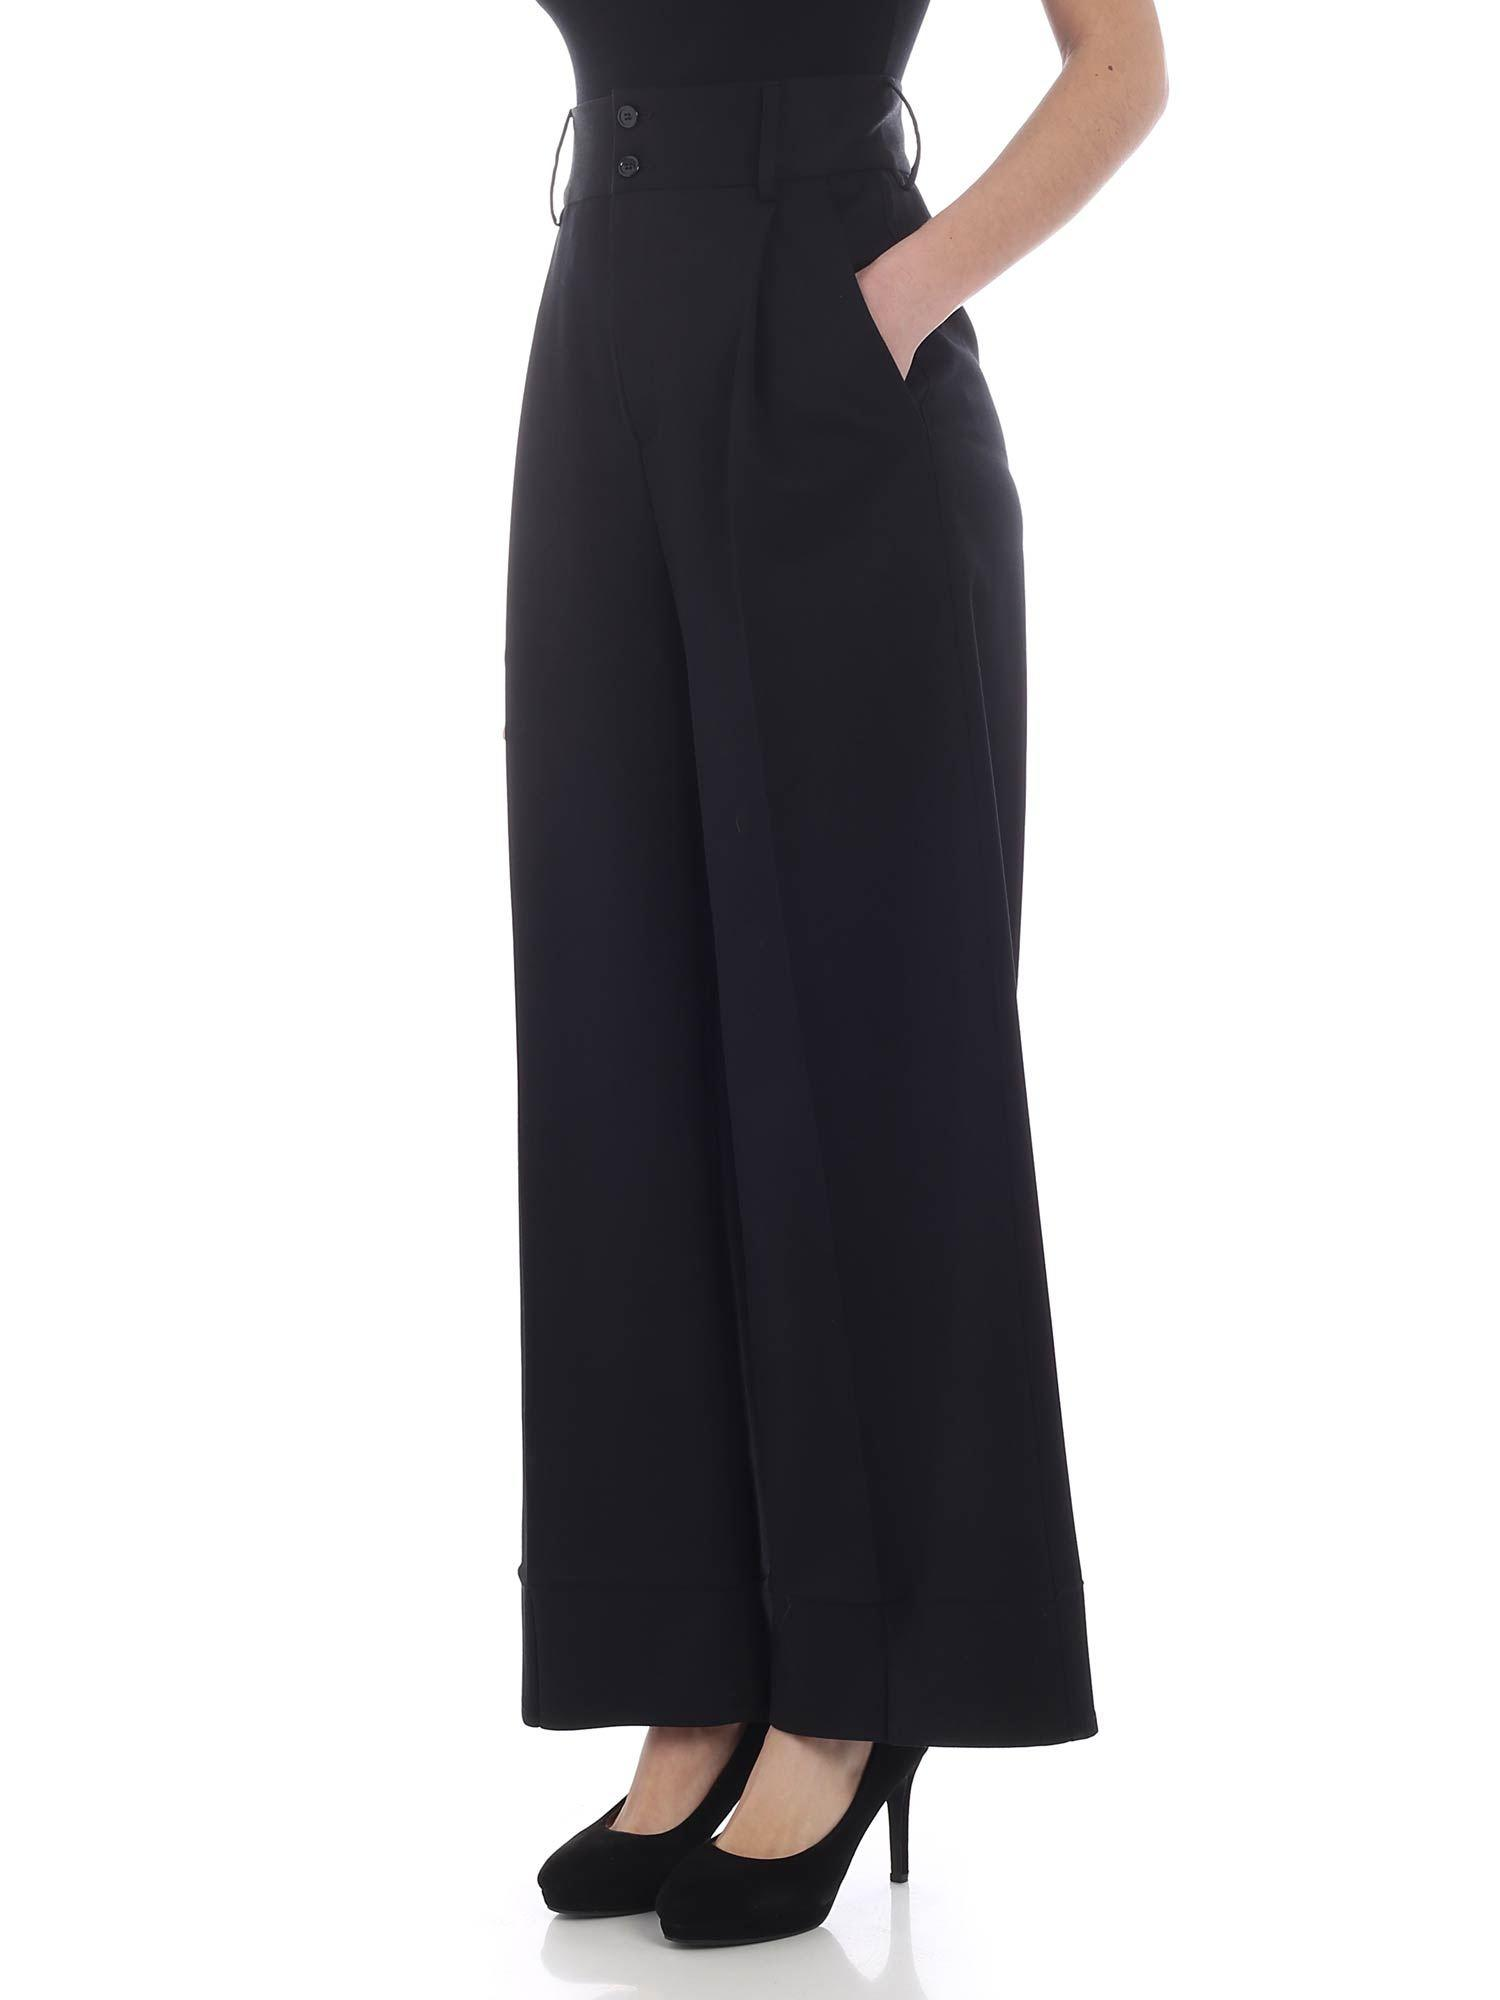 97bd51ba1419 mm6-by-maison-martin-margiela-black-High-waisted-Black-Palazzo-Trousers.jpeg